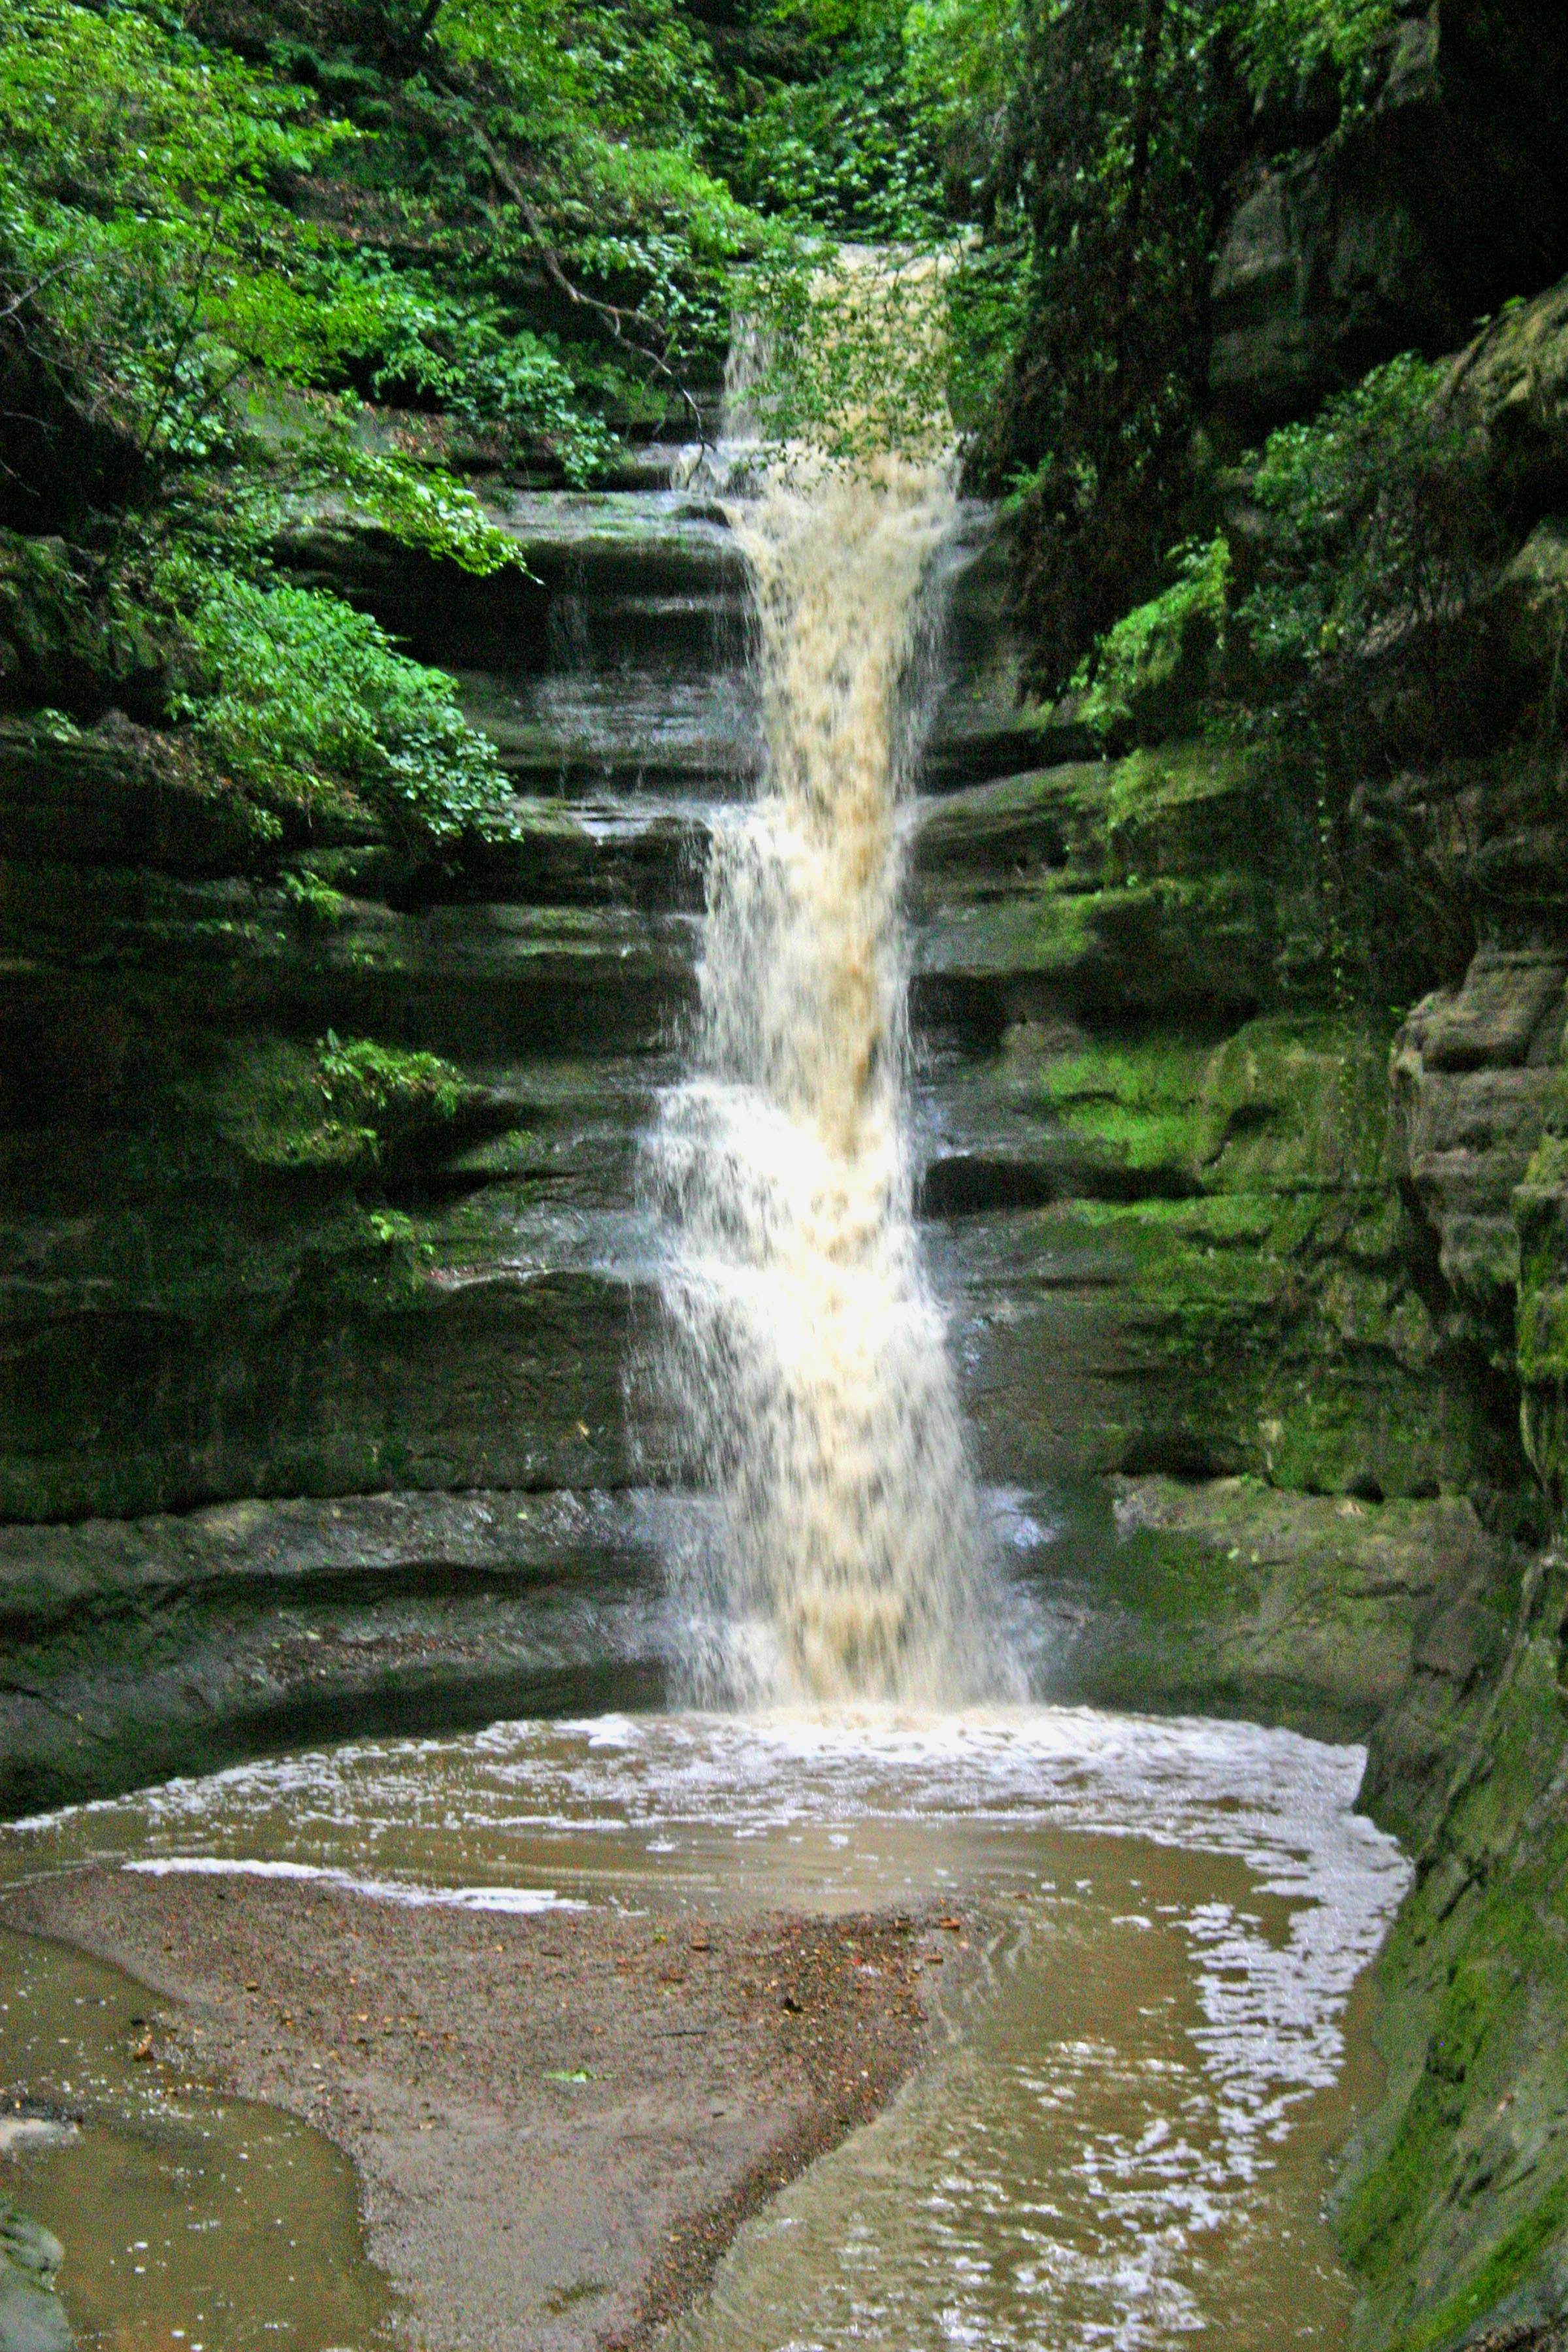 French Canyon at Starved Rock State Park in Oglesby, one of the best places to see natural waterfalls in Illinois.